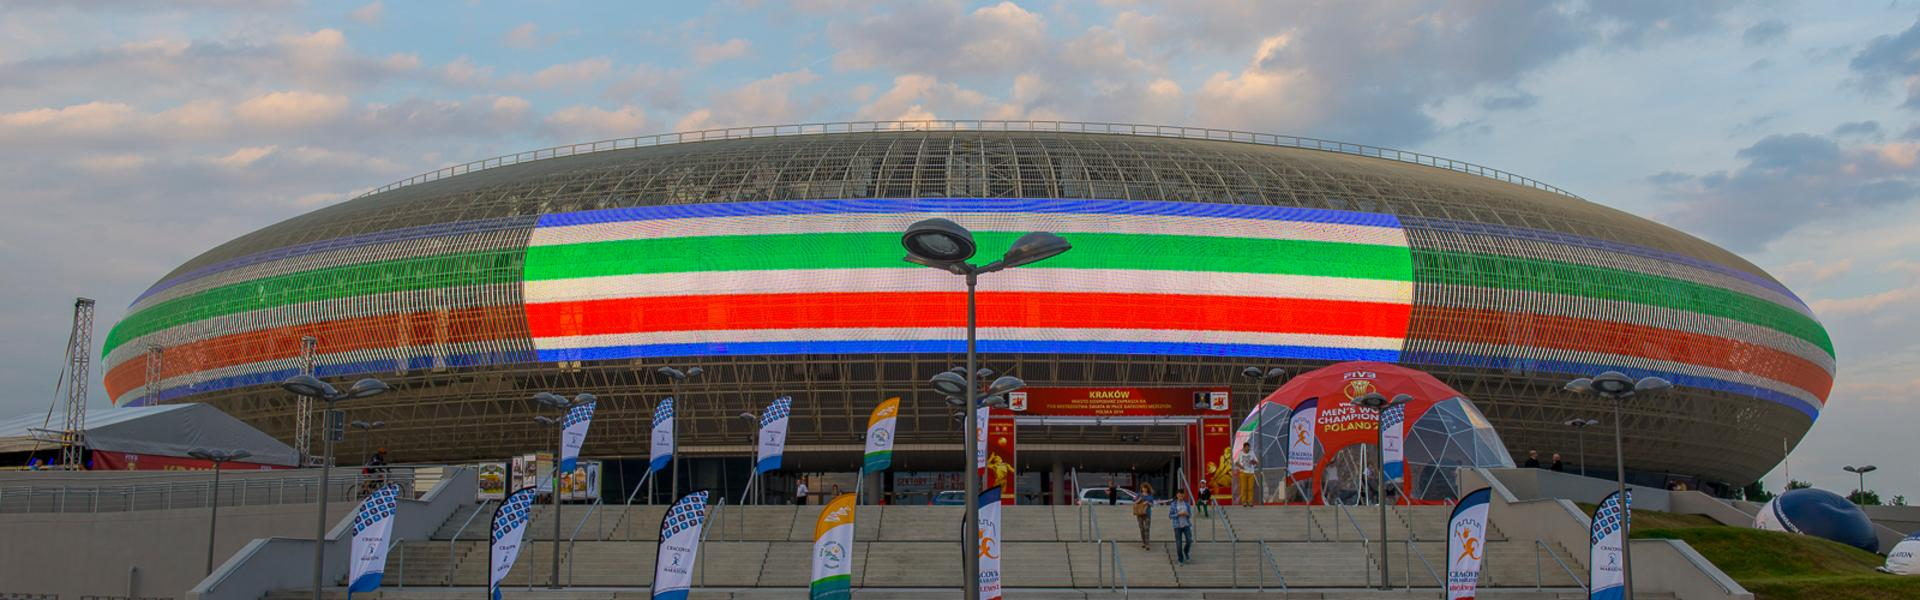 Image: Multifunctional Sports and Entertainment Arena Tauron Arena Kraków